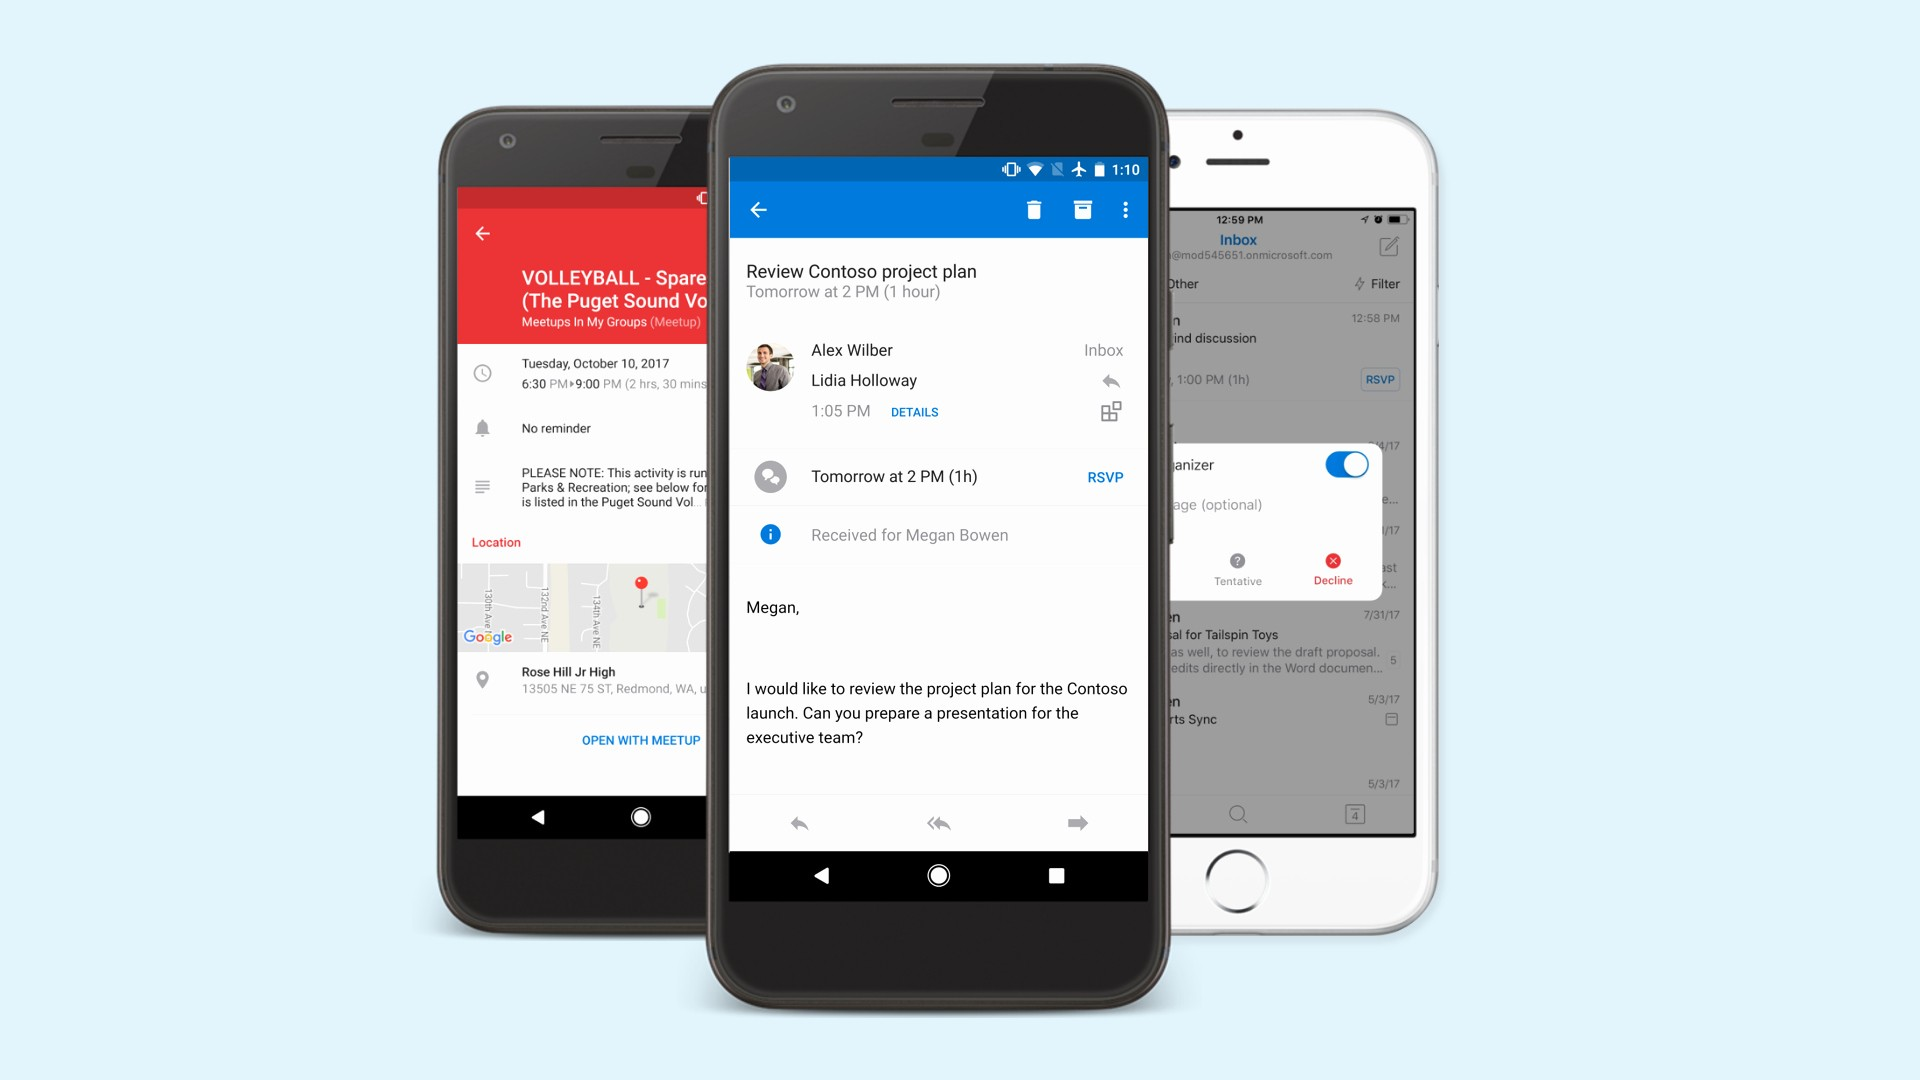 Outlook Calendario android 2019 Melhorias No Email E Calendario Do Outlook Para Ios